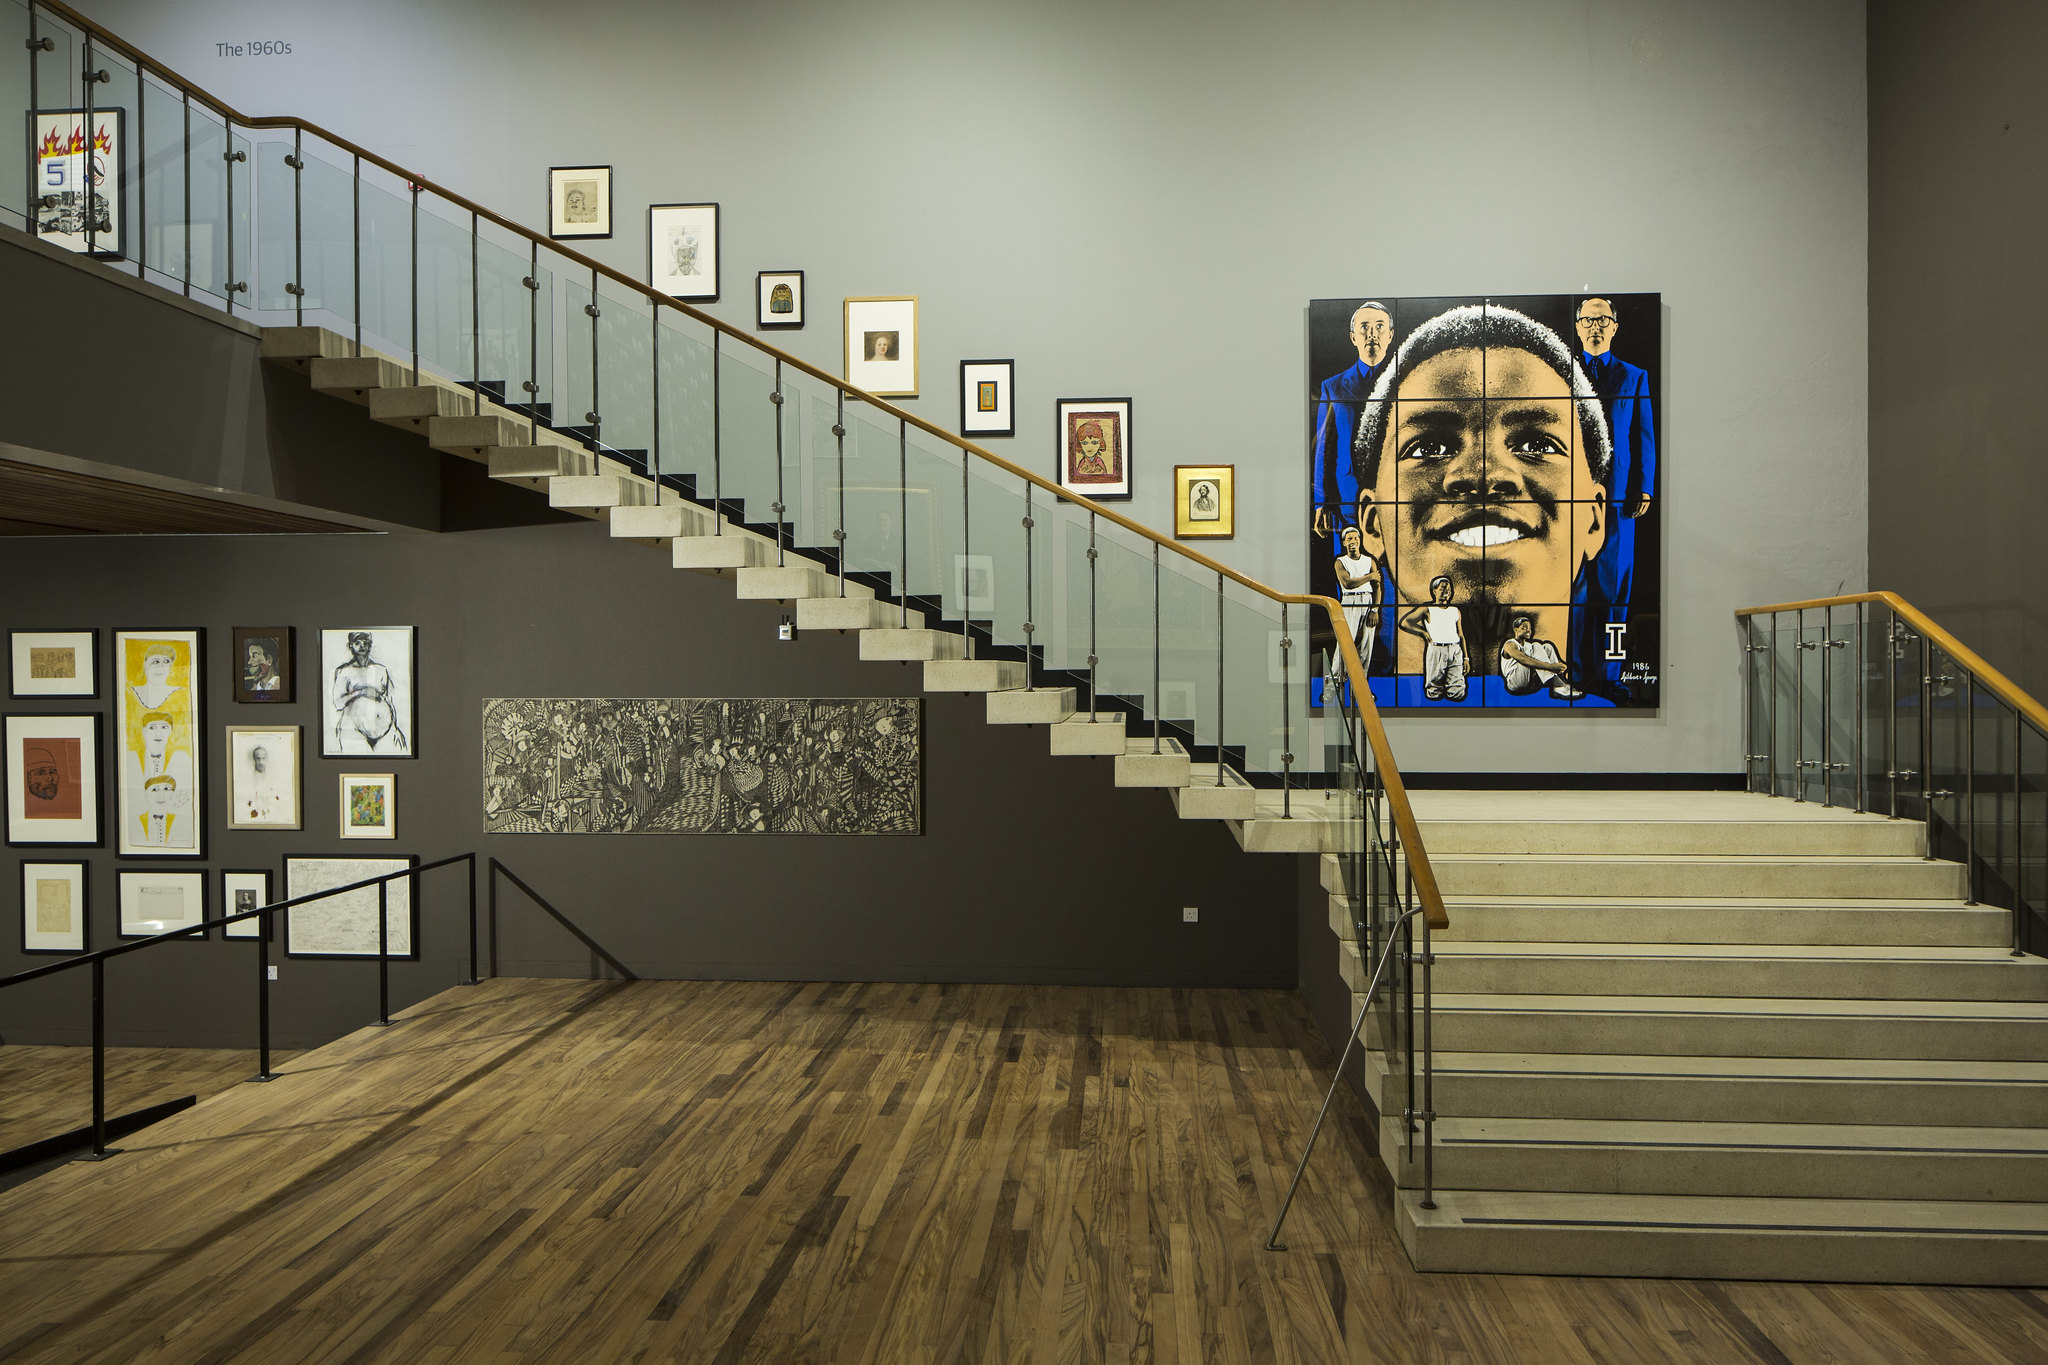 Portraits around a staircase at the Whitworth Art Gallery